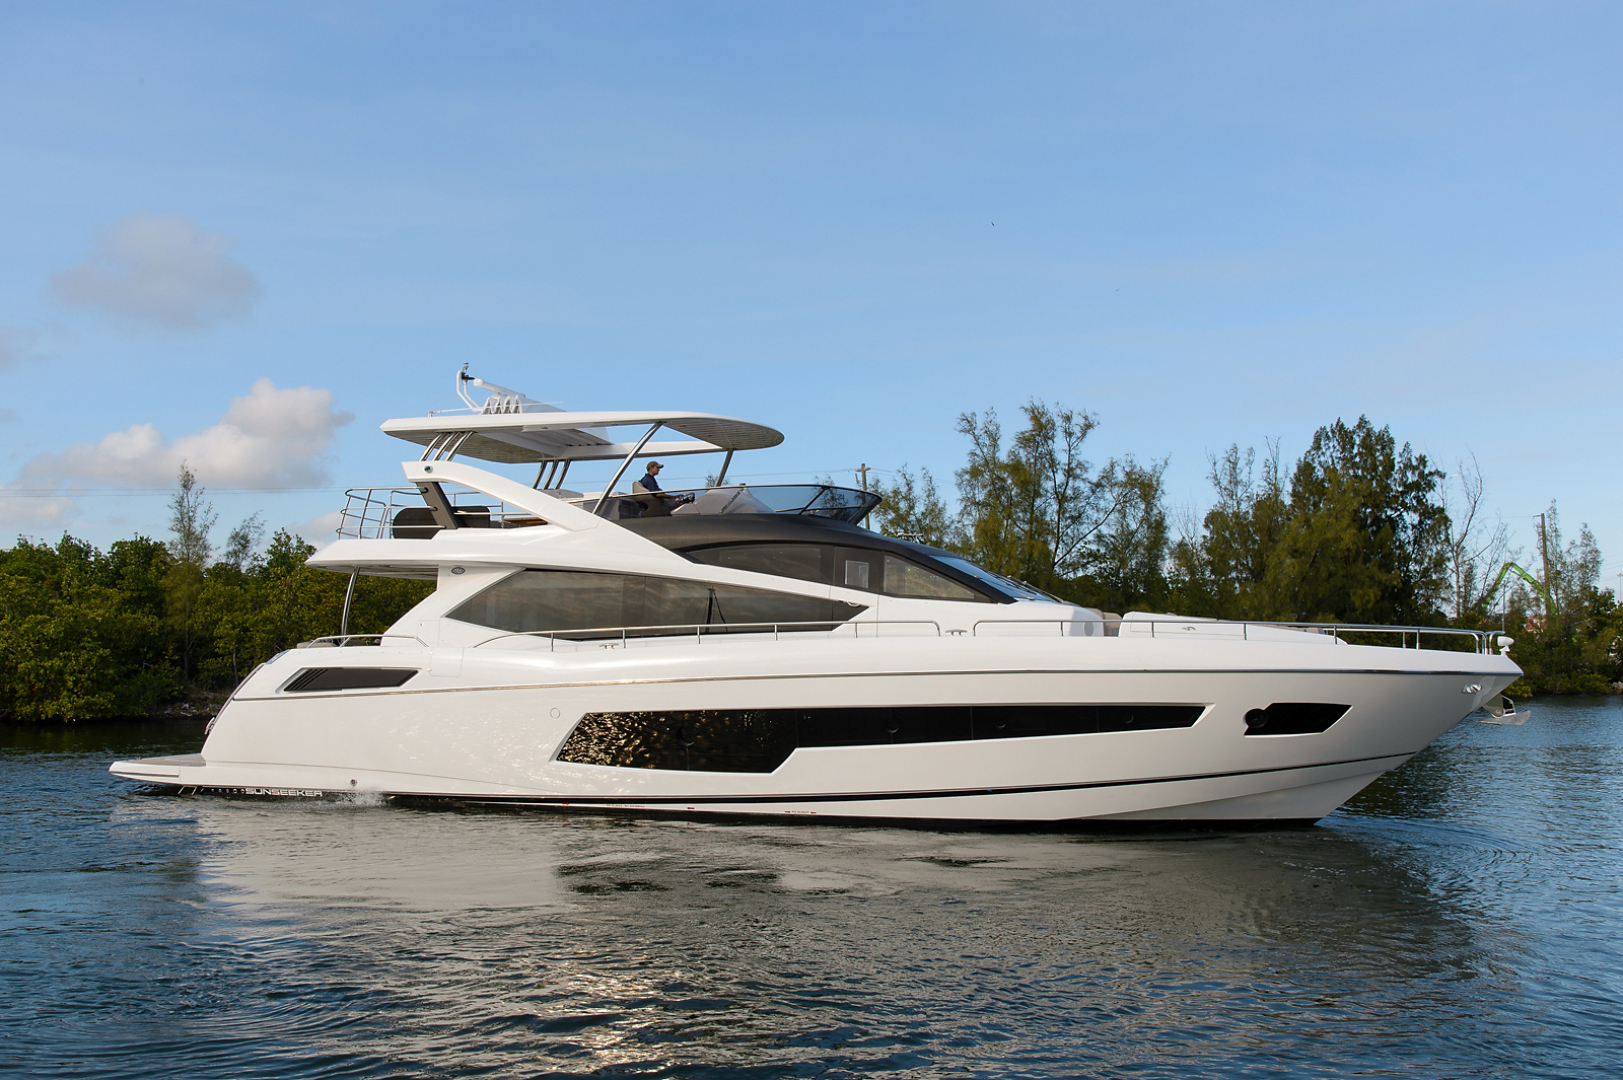 Sunseeker-75 Yacht 2017-Claudia Dania Beach-Florida-United States-1617121 | Thumbnail